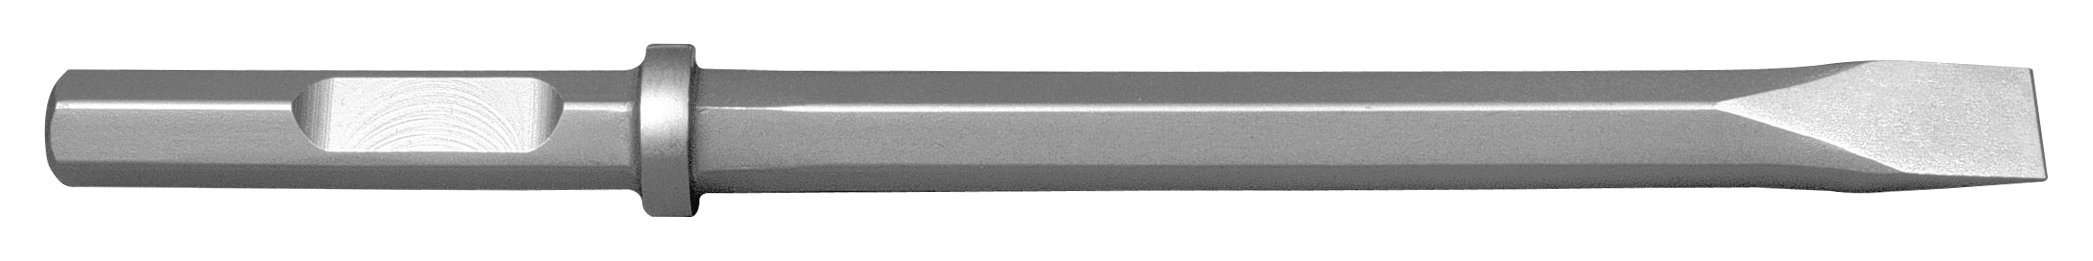 Champion Chisel, 1-1/8 by 6-Inch Hex Shank w/notch, 18-Inch Long Narrow Chisel - Designed for 60lb & 90lb Pneumatic Hammers